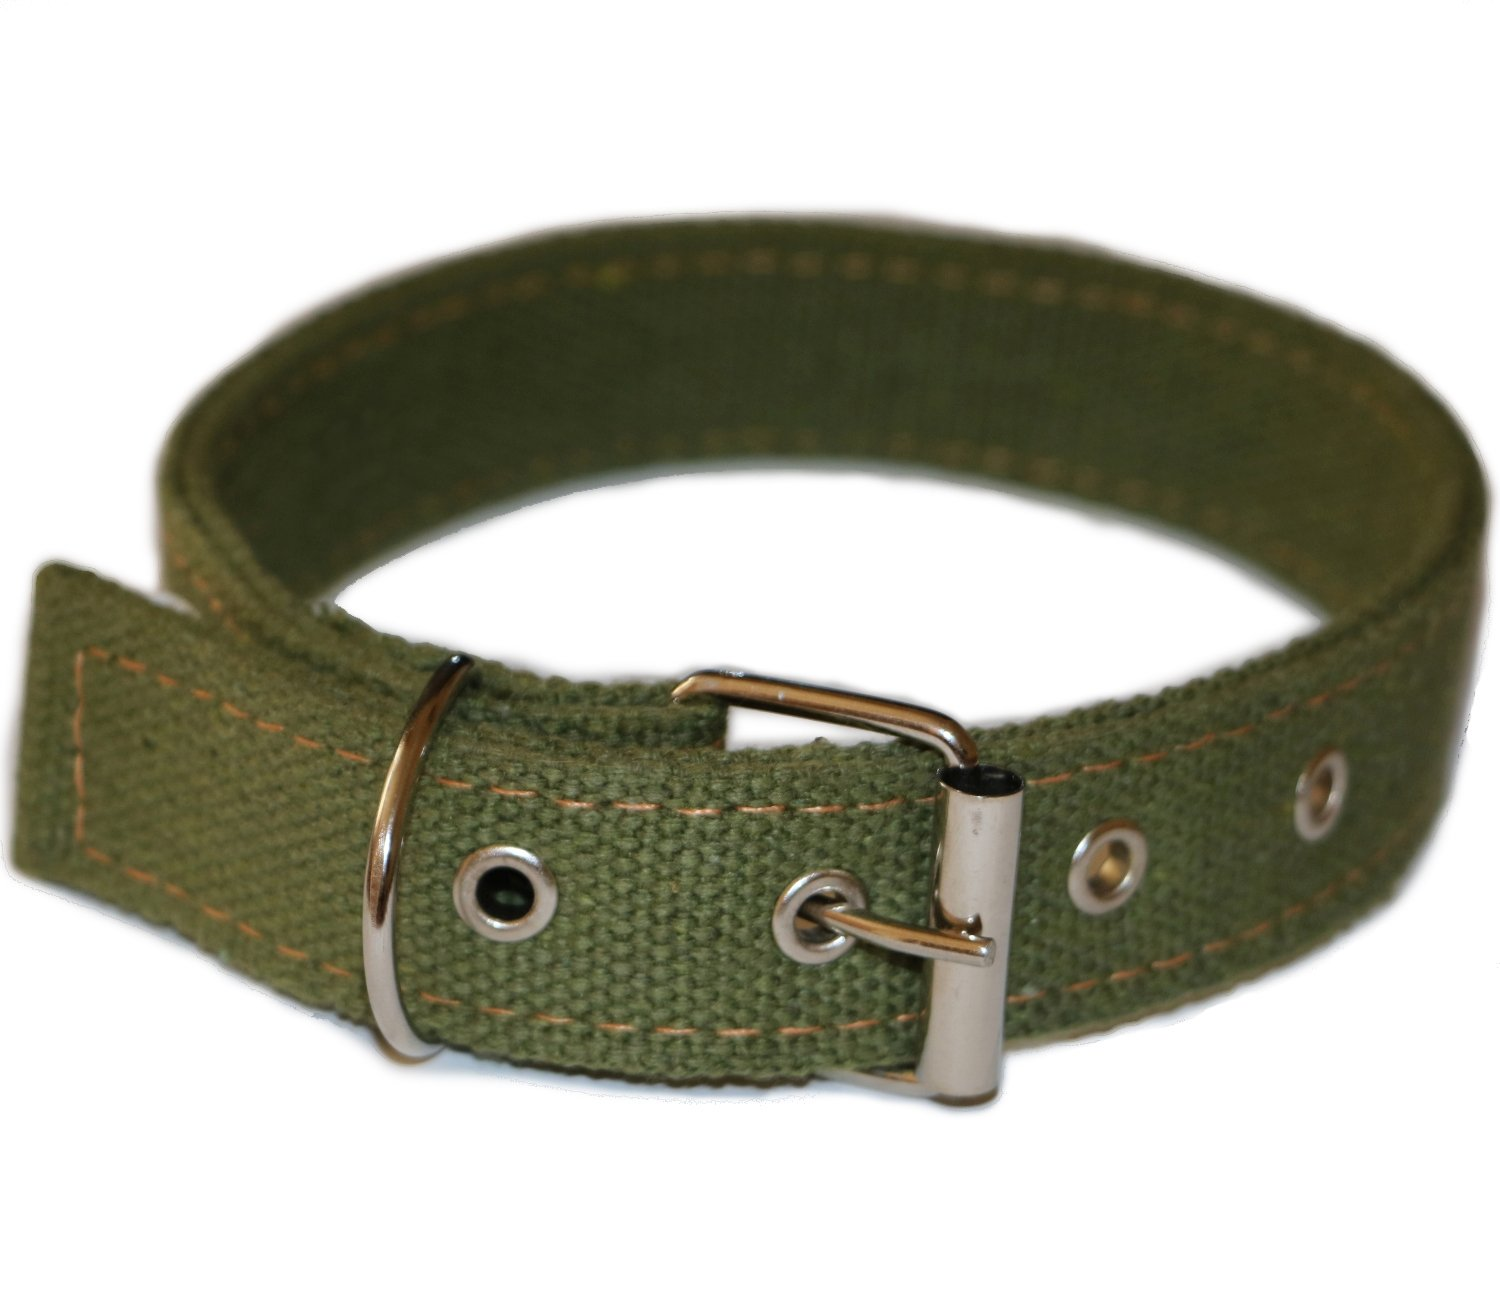 ALAN M-size, Durable double layer tarpaulin dog collar for medium dogs (Neck  13.4-16.9 inches 34-43 cm)